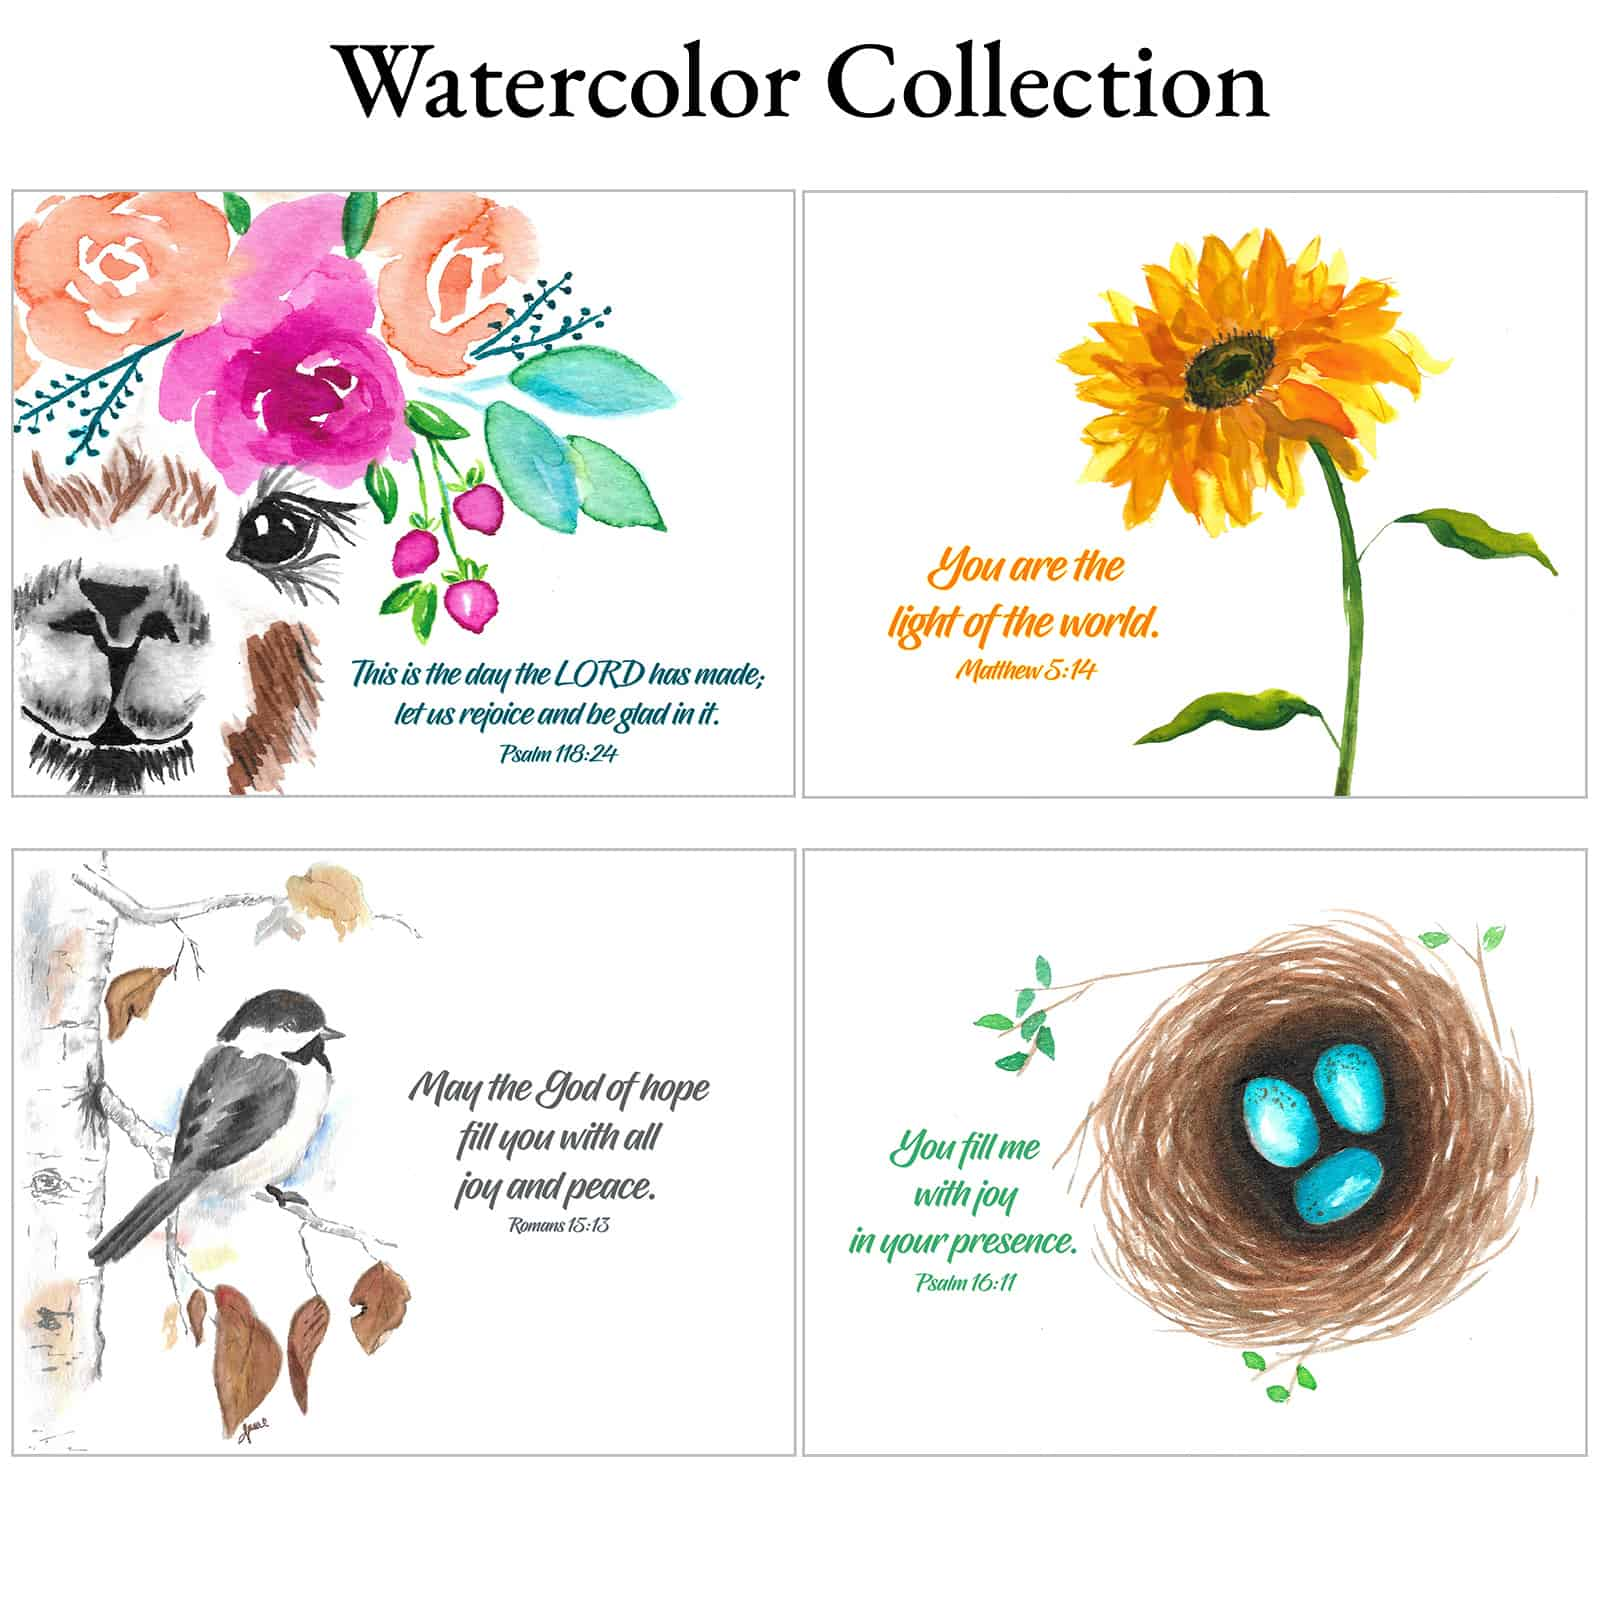 Watercolor Collection